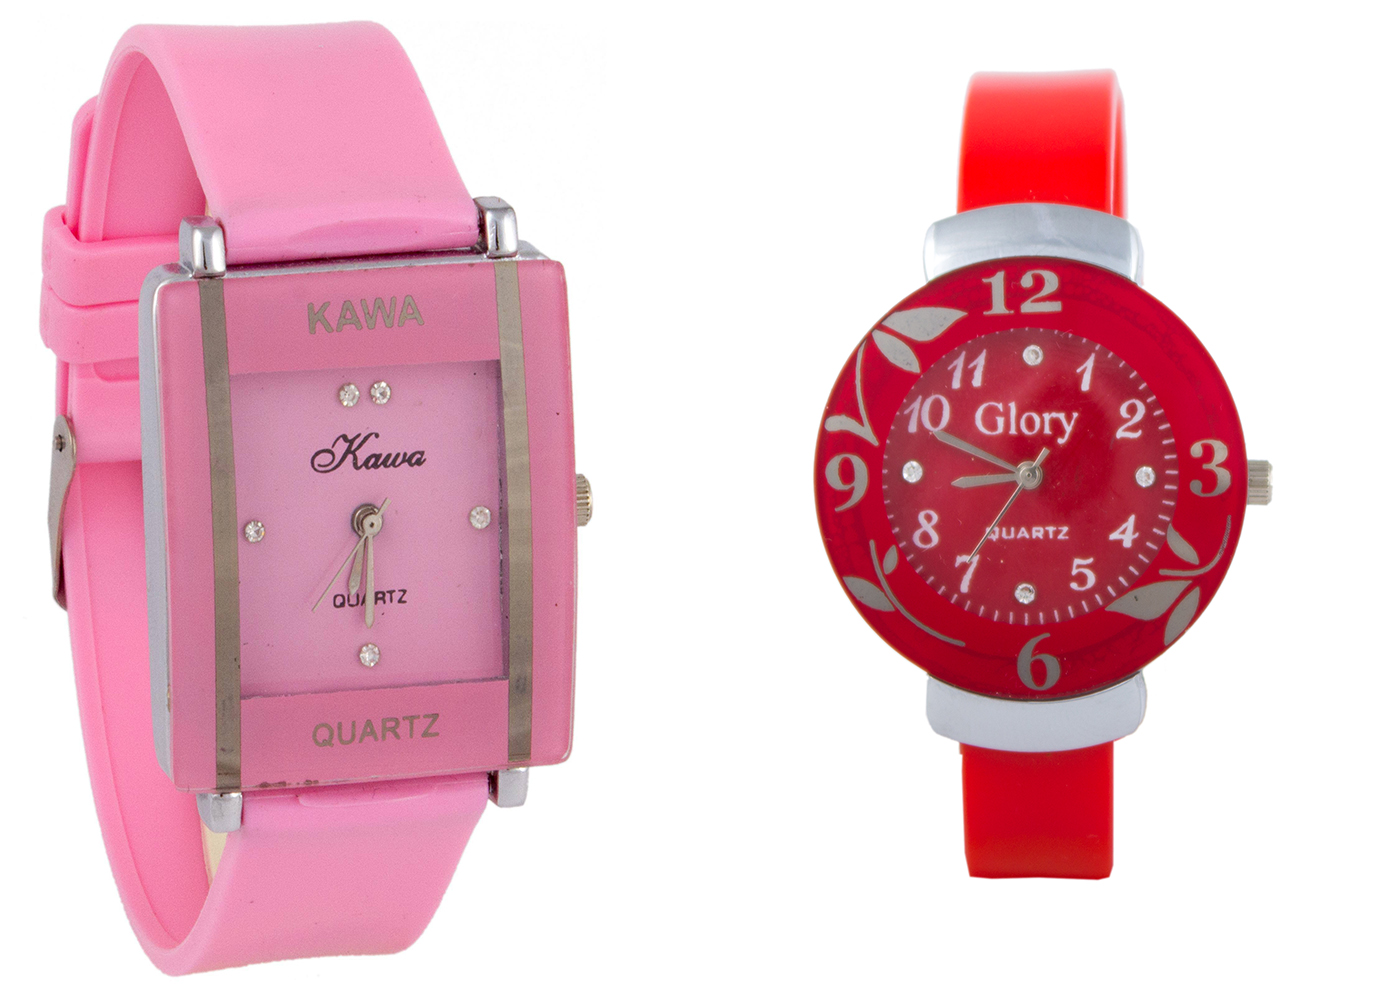 Glory  Combo Of Two Watches-Baby Pink Rectangular Dial Kawa And Red Circular Dial Watches by miss